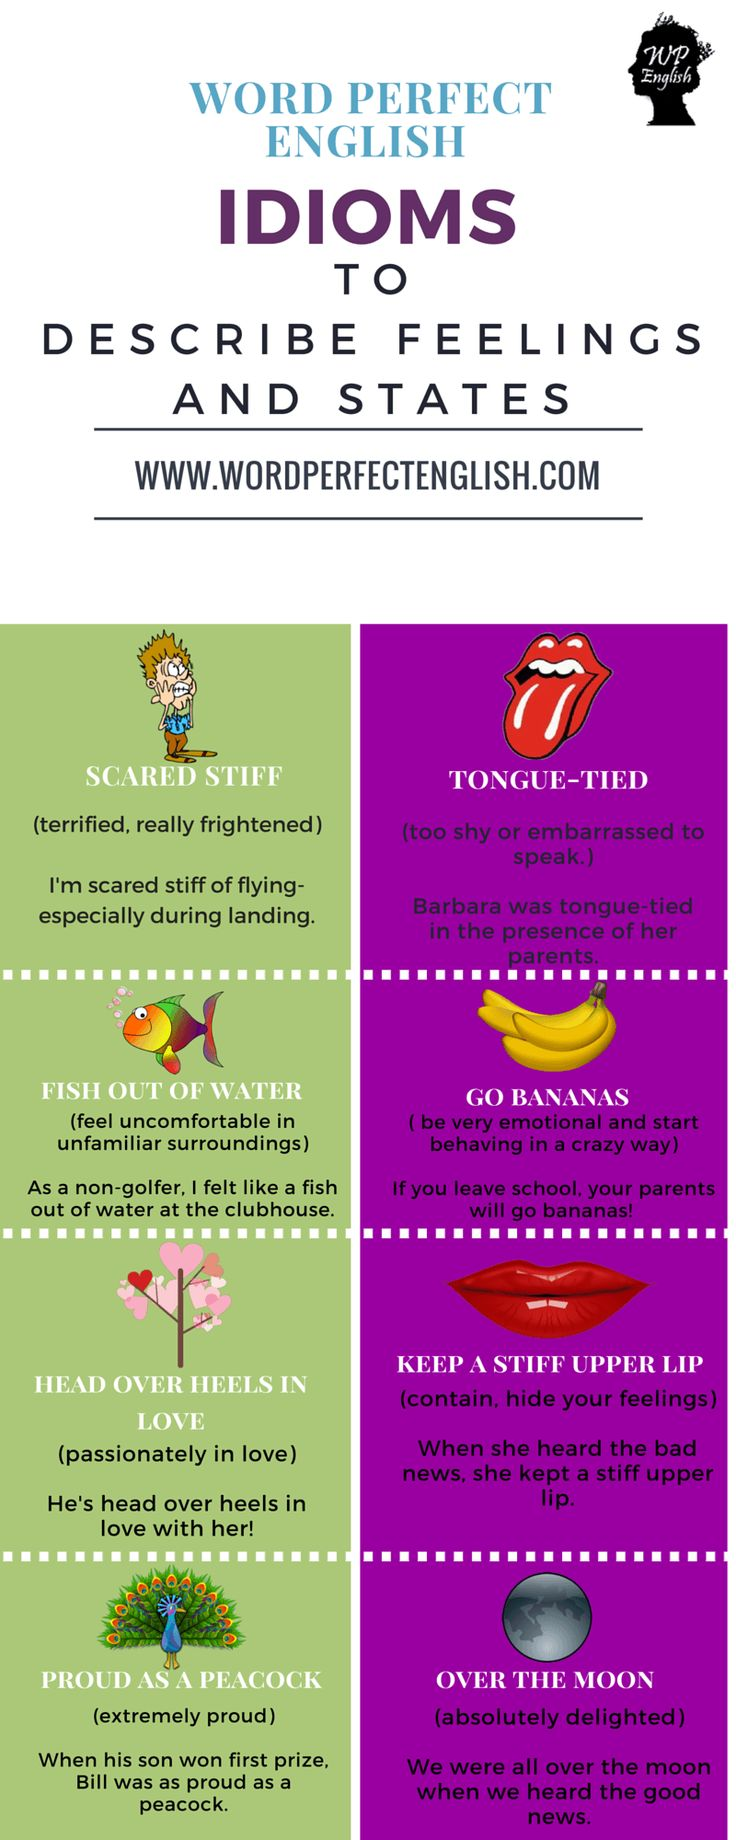 Idioms to Describe Feelings and States 2/2                                                                                                                                                                                 More